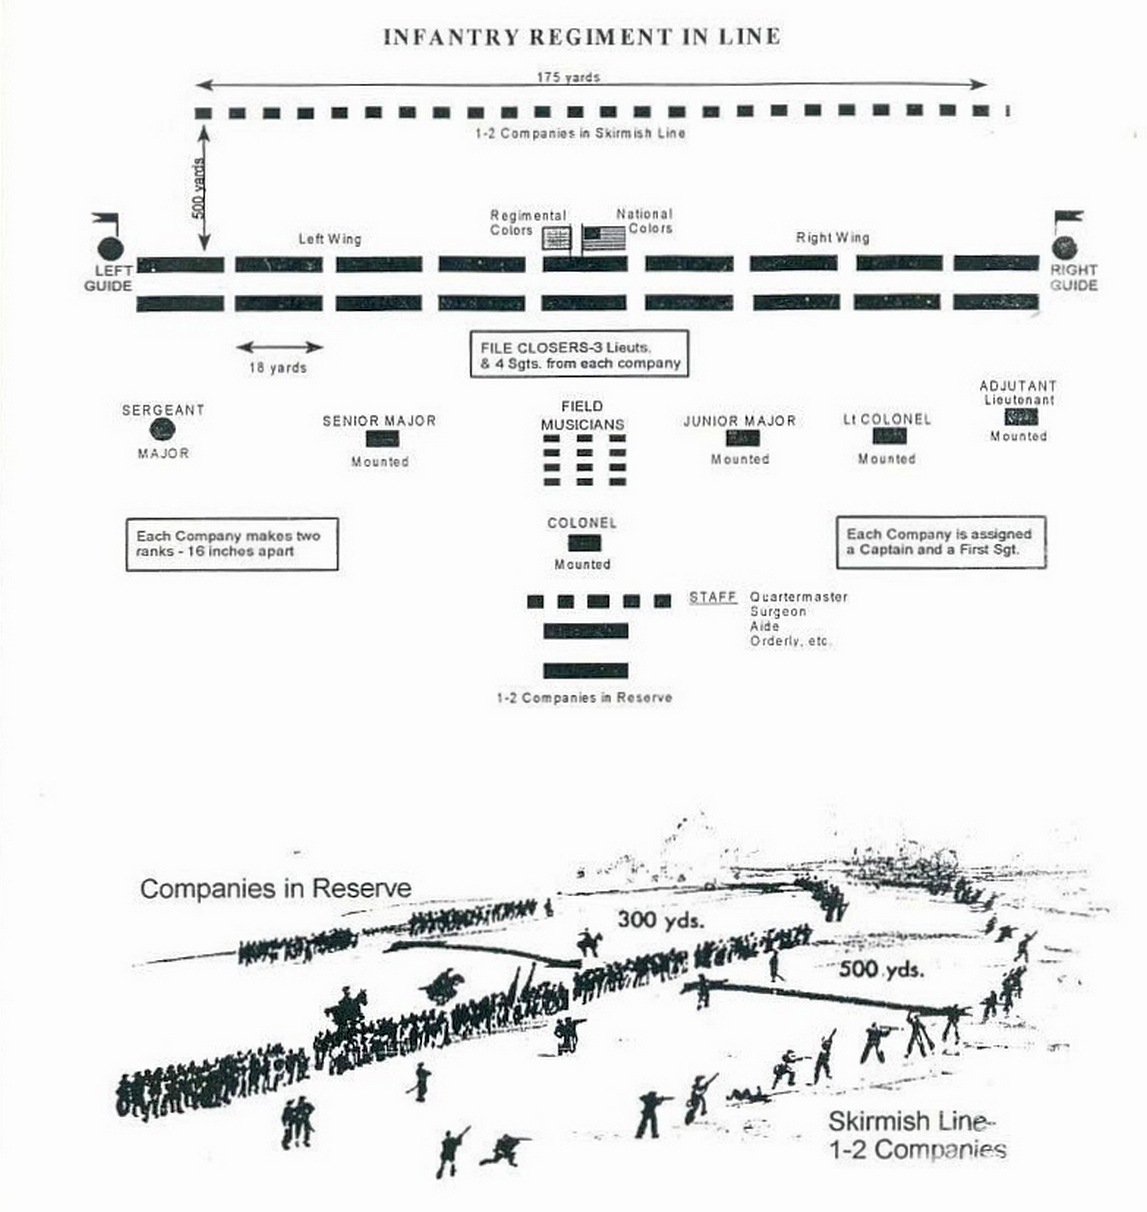 battlefield formations diagram 1999 ford f350 ignition wiring civil war army infantry battle formation union confederate